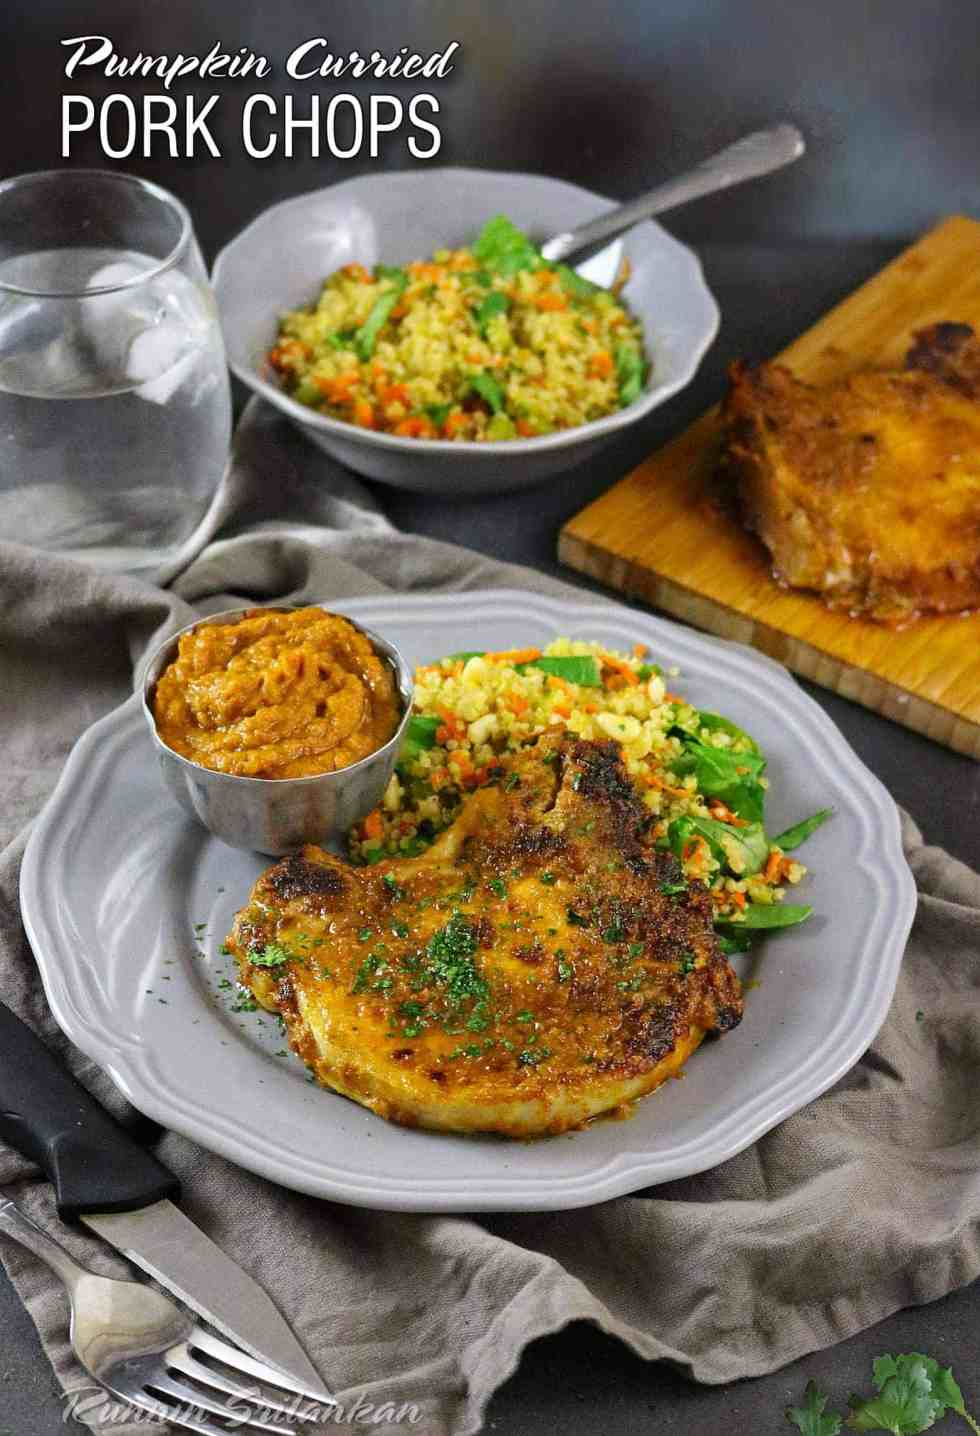 ... Curried Pork Chops with a hint of paprika and caramelized onion